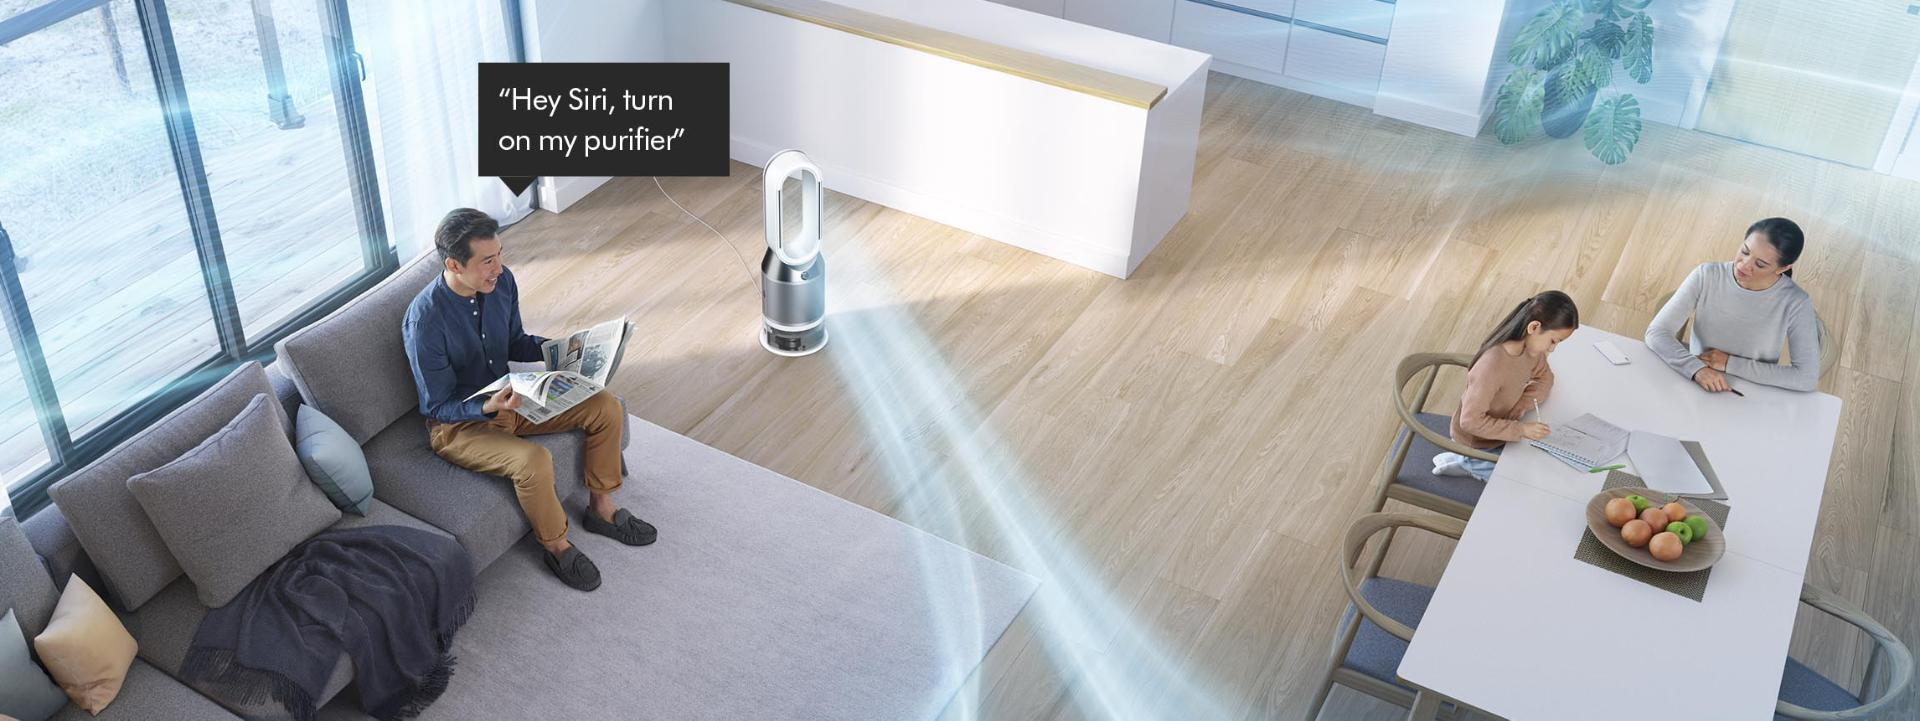 Man on a sofa asking Dyson purifier to purify a room.